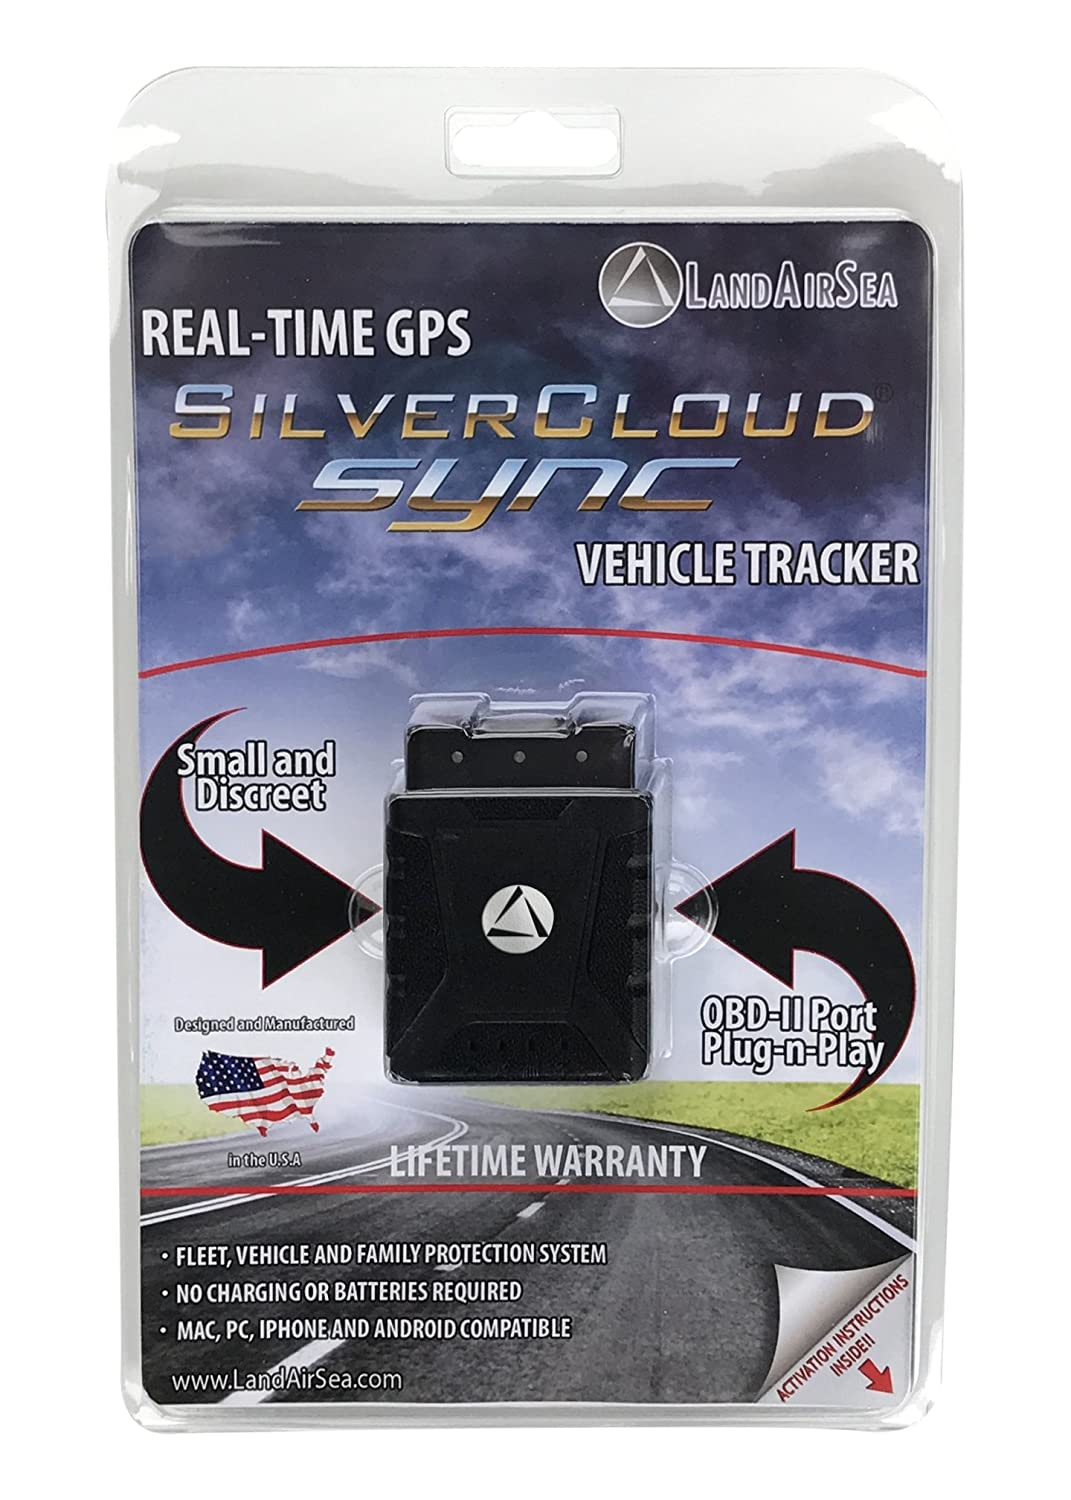 LandAirSea SilverCloud SYNC Real-time Tracking Device Covert OBD2 GPS Tracker for Vehicles and Fleet Tracking SIM Card Included LandAirSea Systems 3000